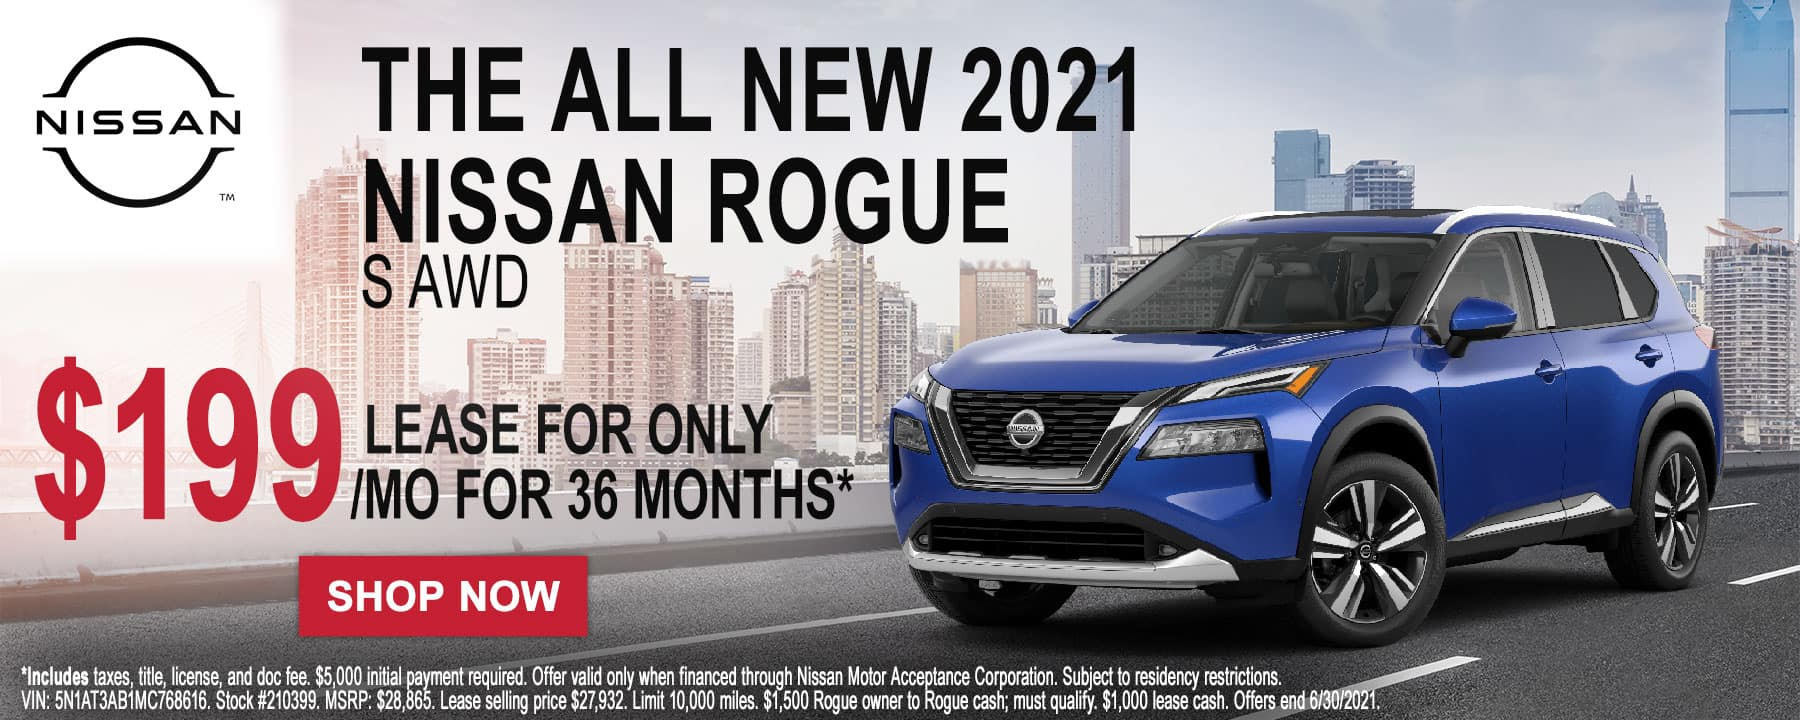 Rogue-Lease-offer-Star-6-30-21